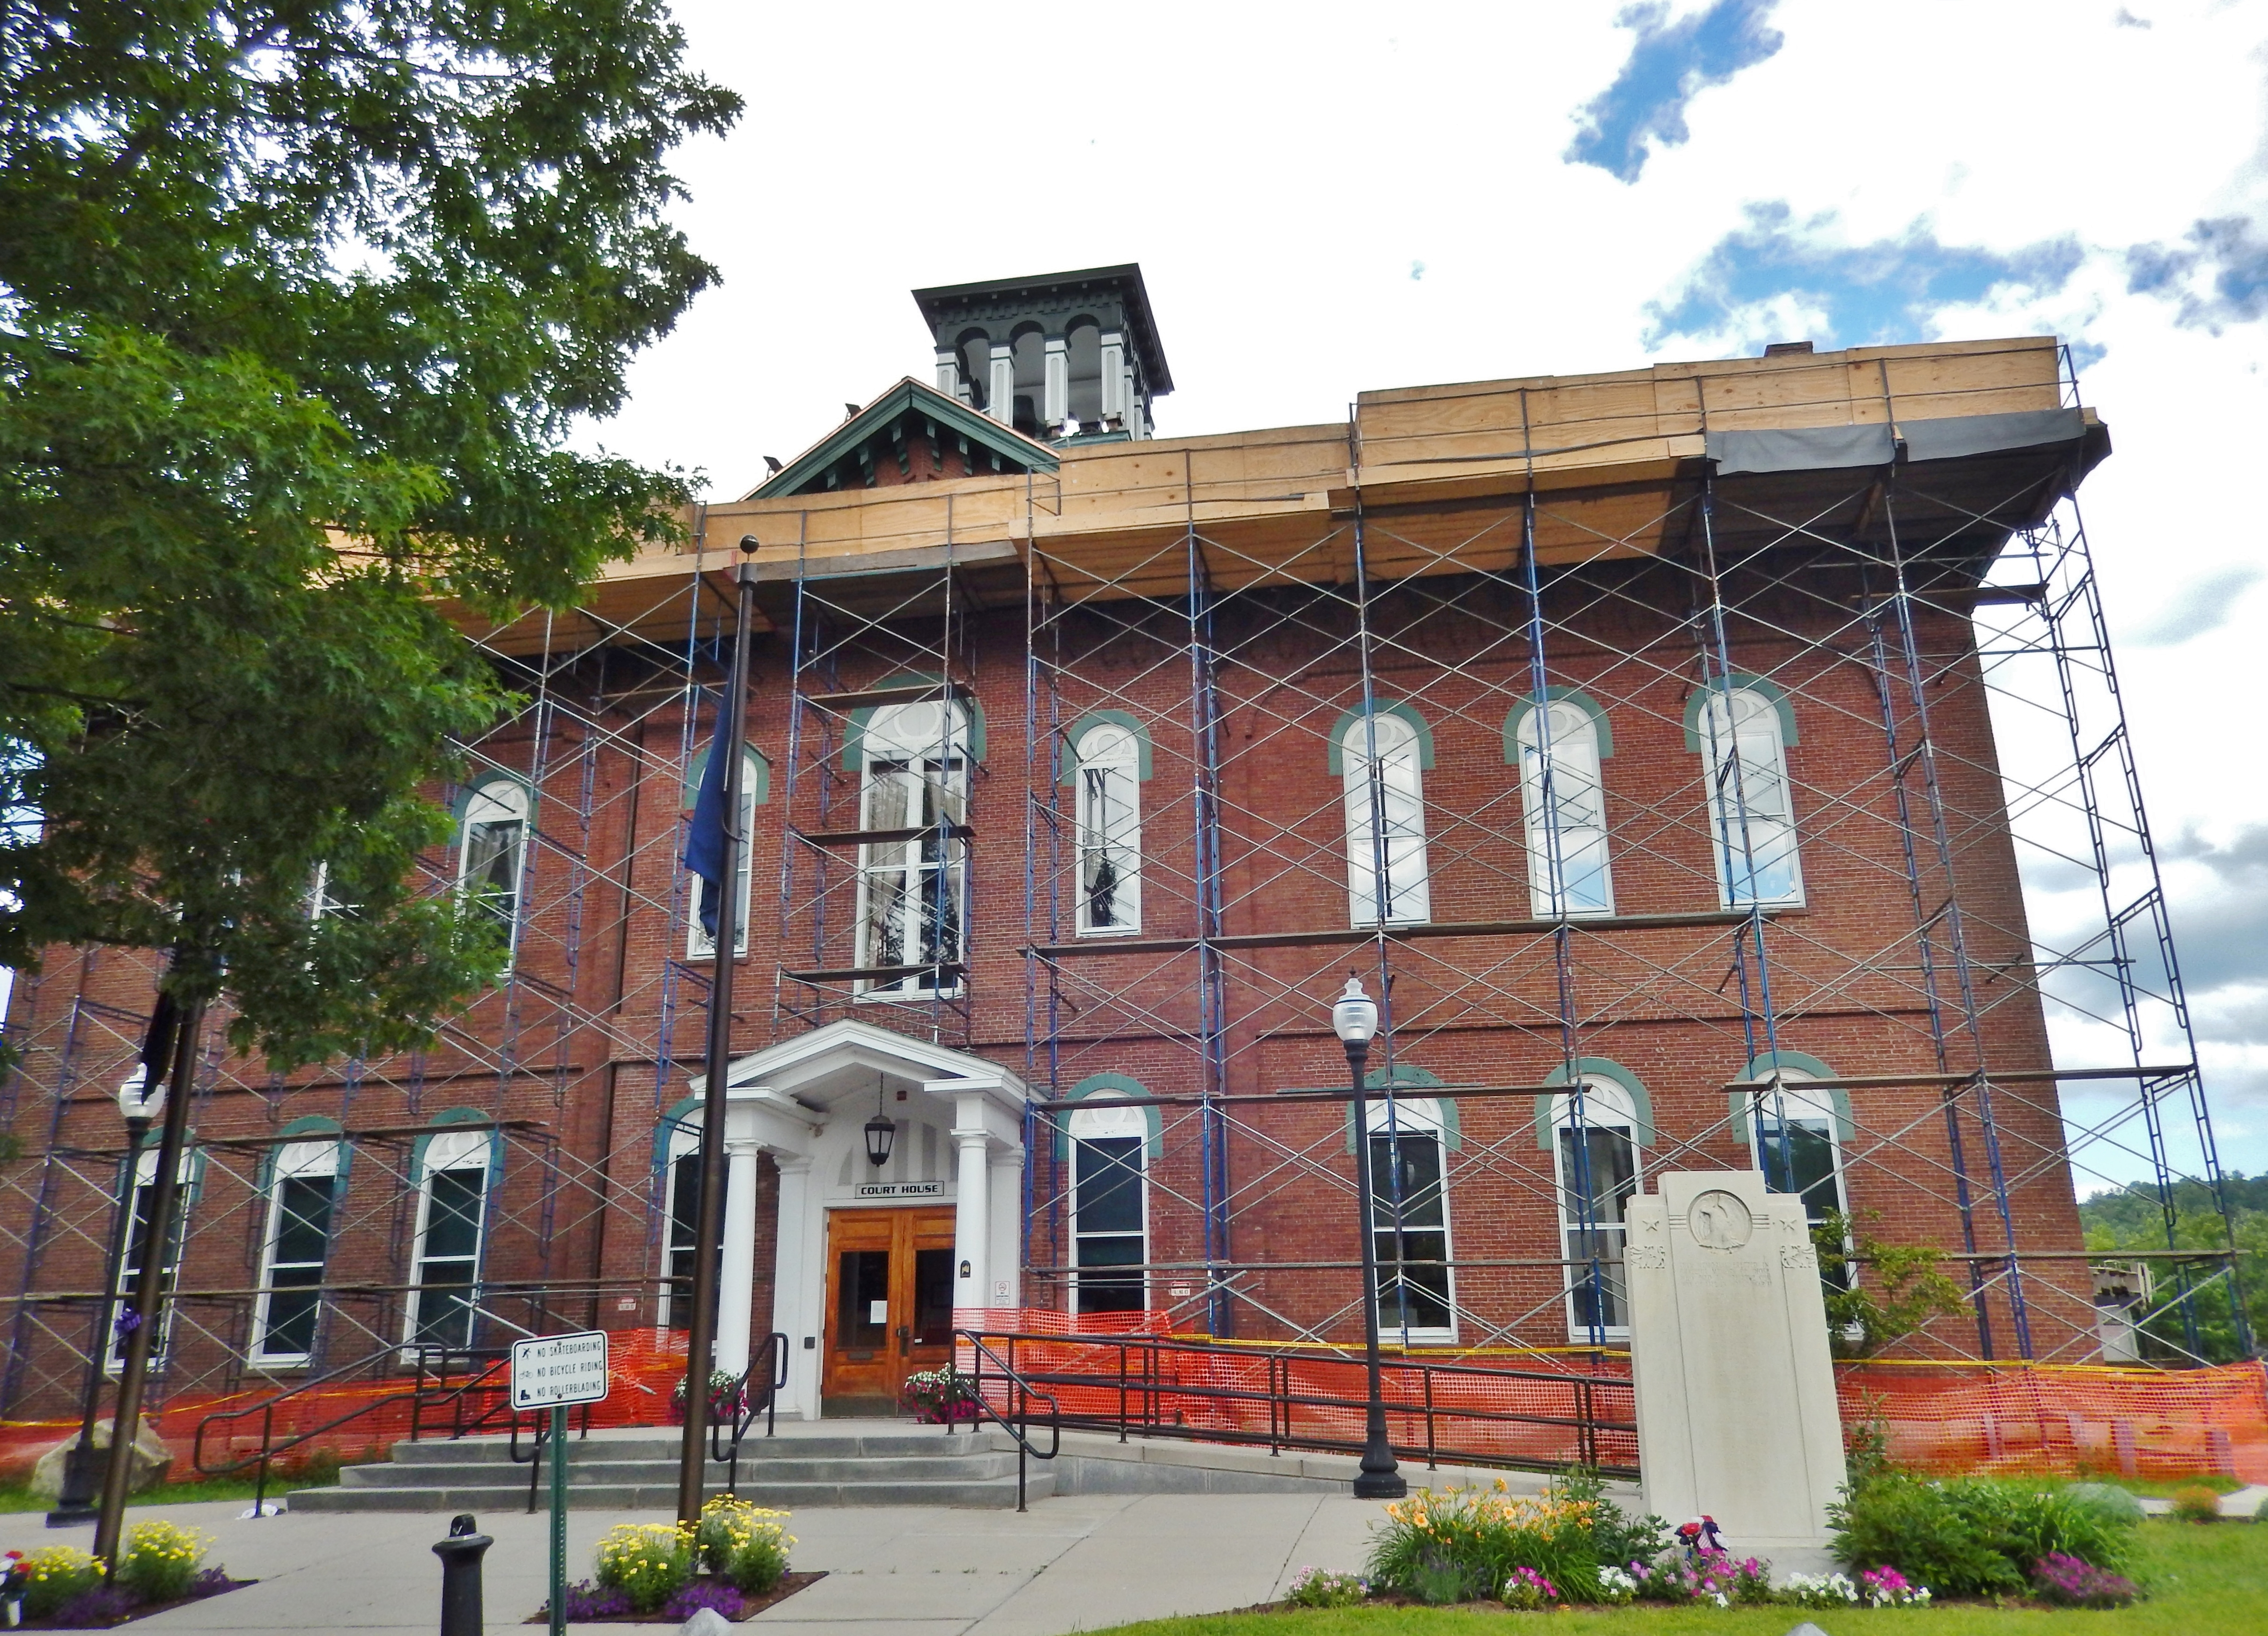 Caledonia County Courthouse (<i>2017 construction in progress</i>)